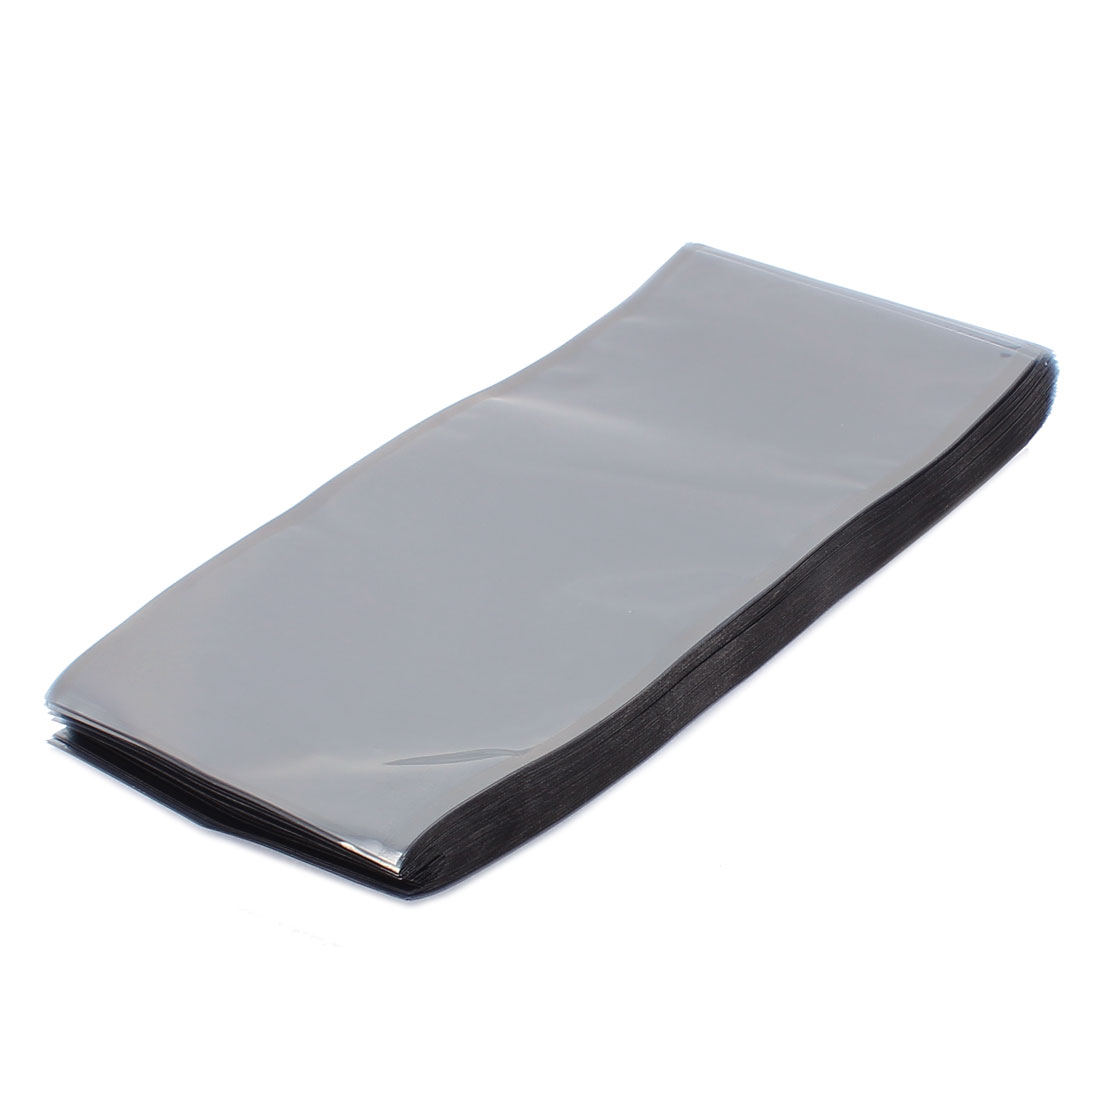 100 Pcs 110mm x 220mm Silver Tone Flat Open Top Anti Static Bag For Electronics